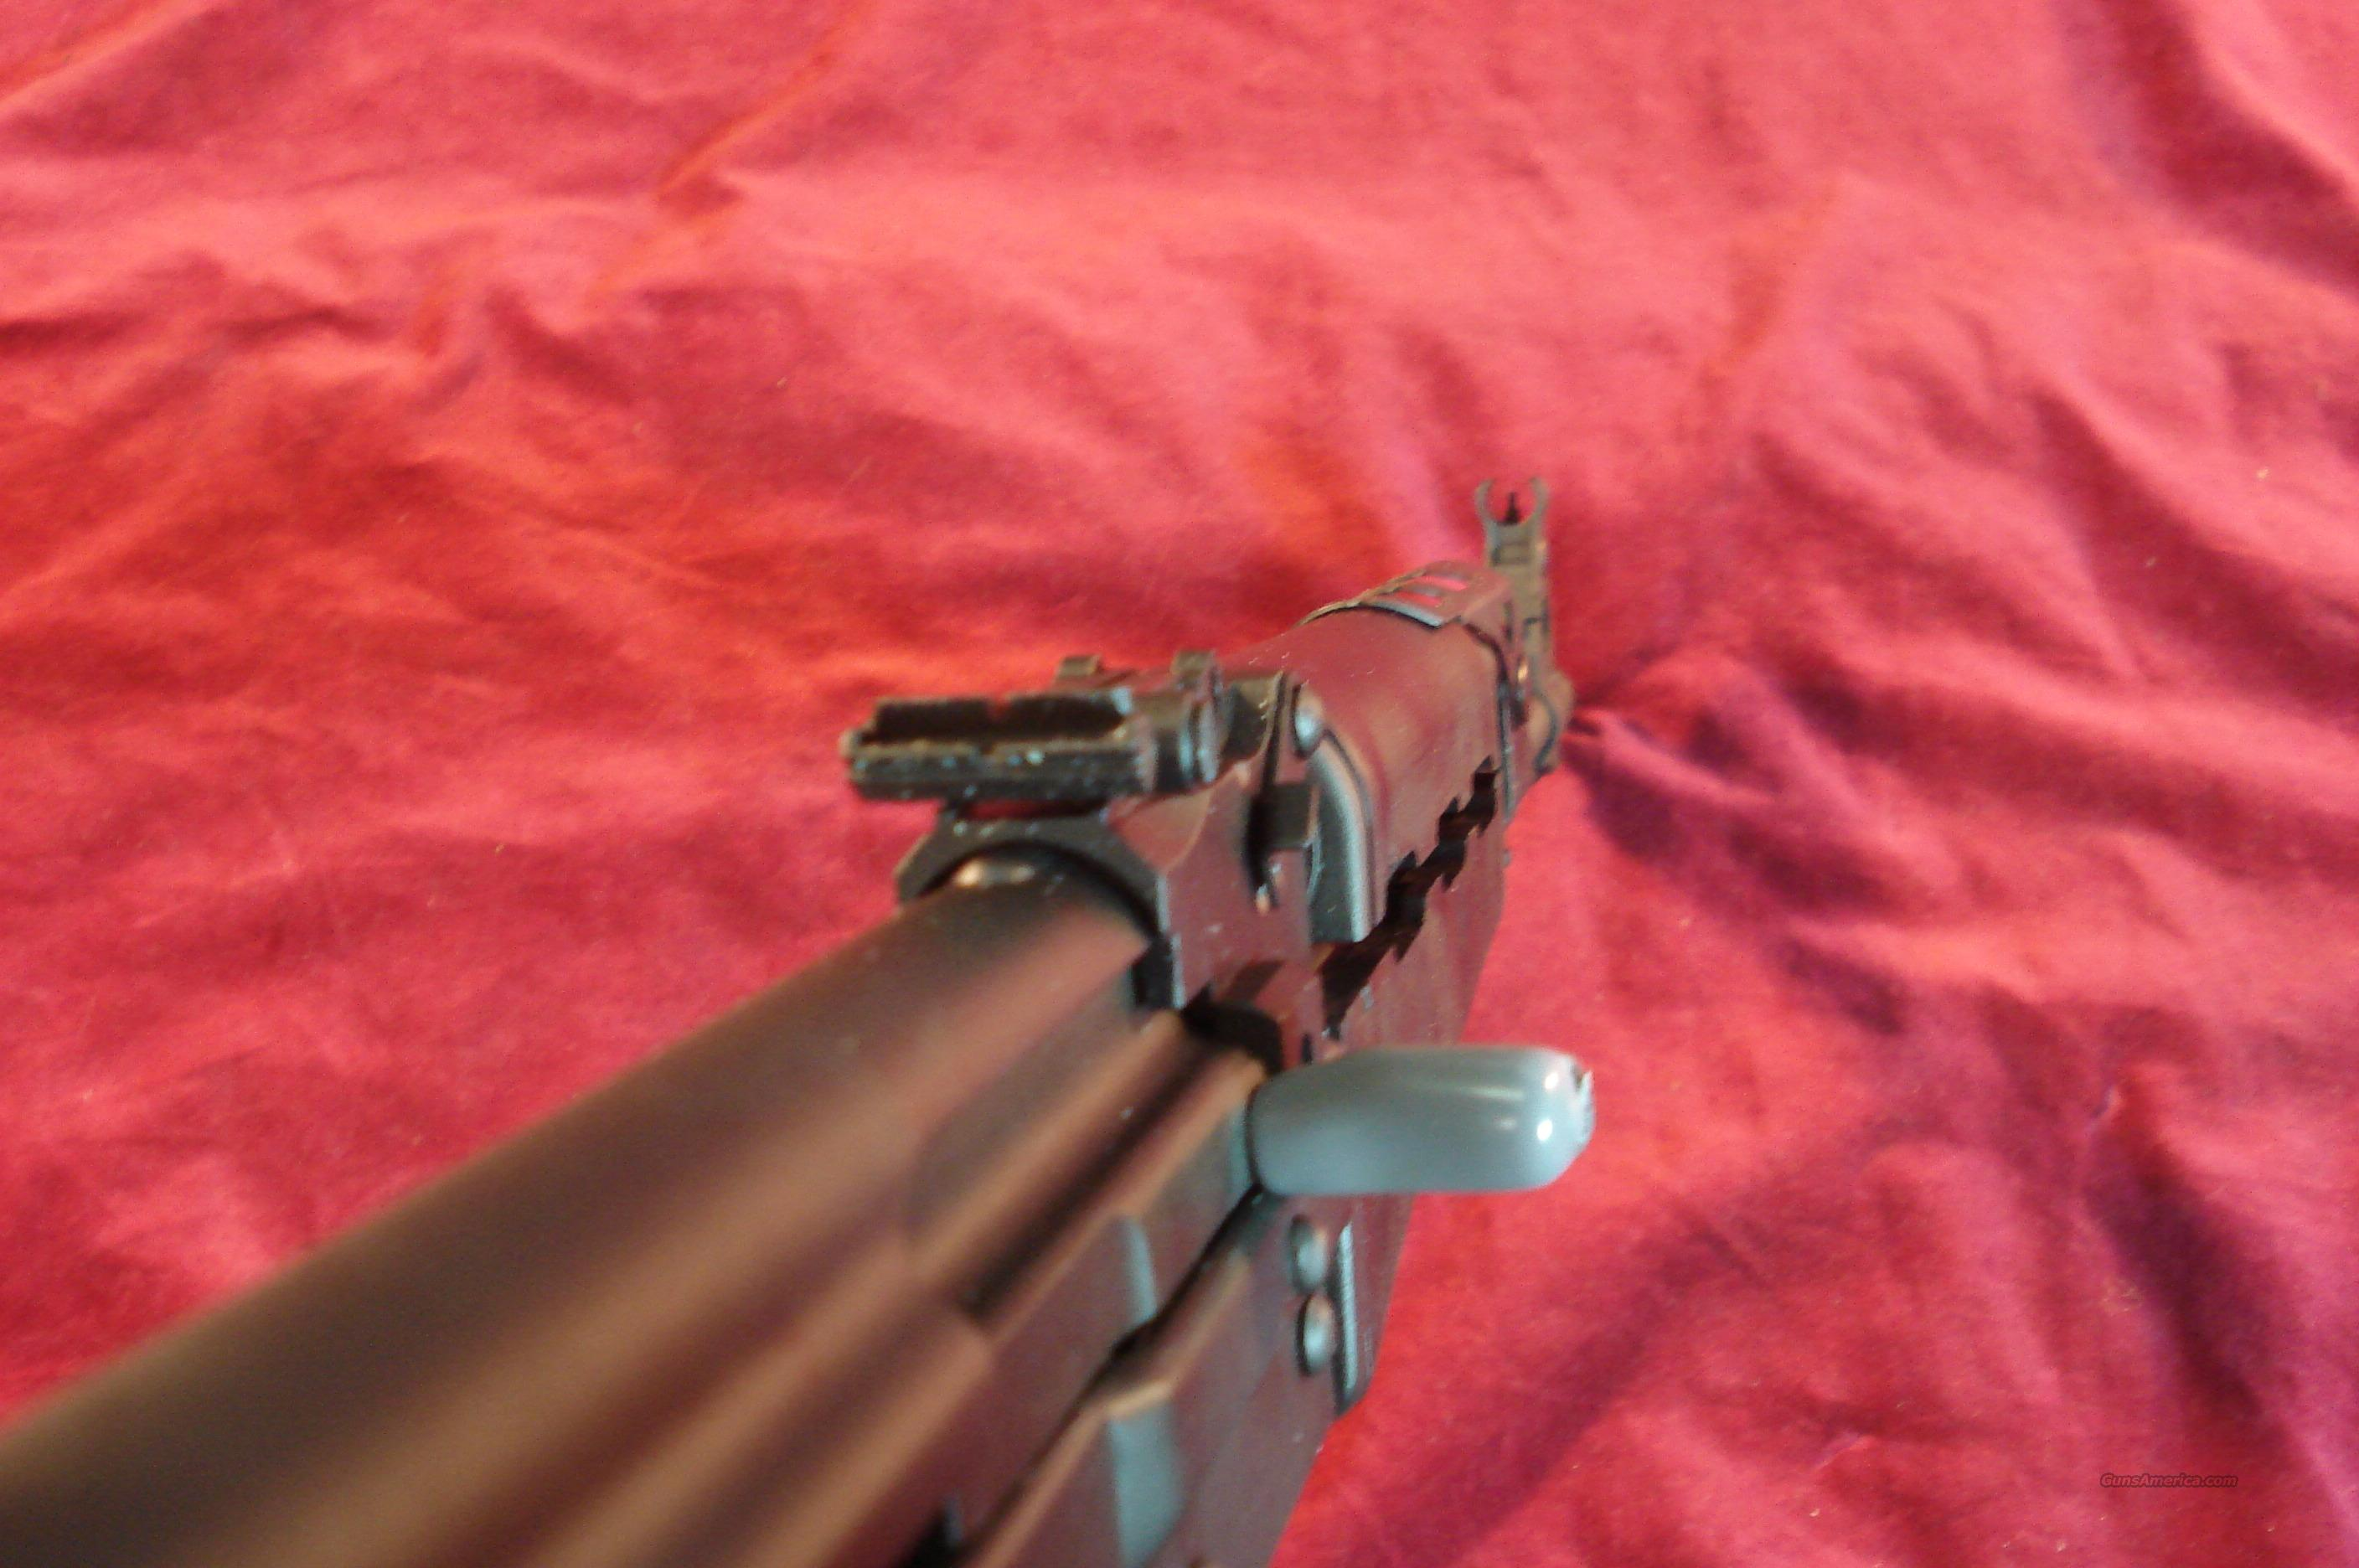 CENTURY ARMS AK-47 UNDERFOLDER STOCK 7.62X39 NEW  Guns > Rifles > AK-47 Rifles (and copies) > Folding Stock